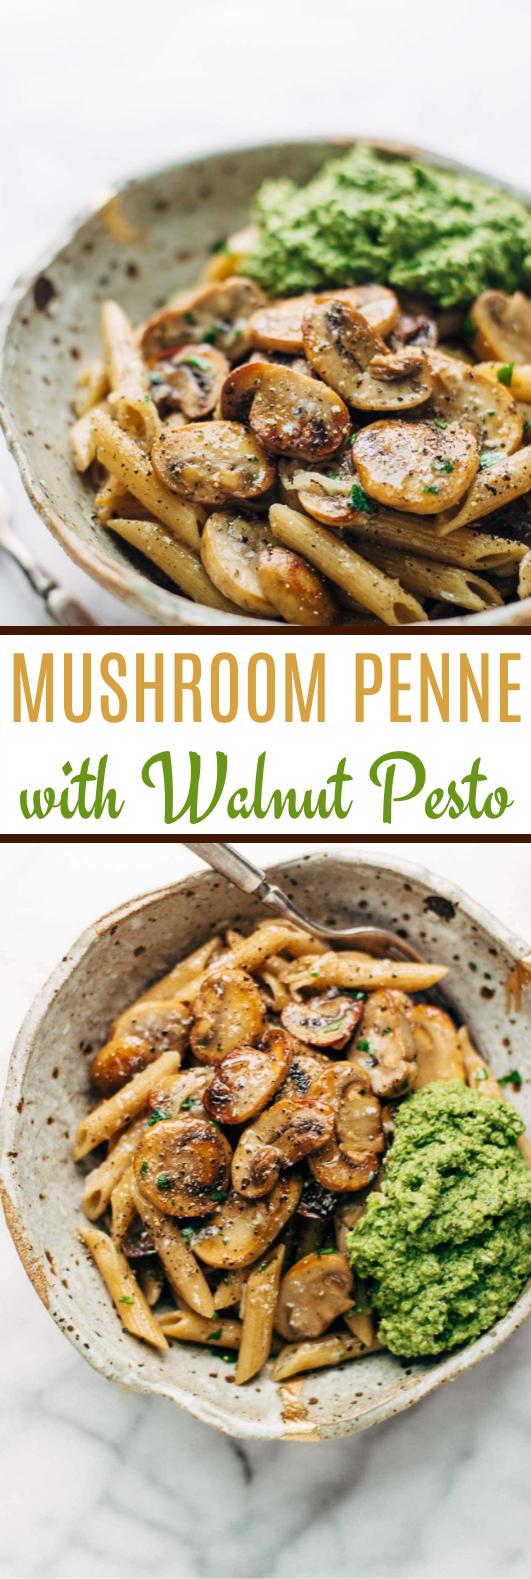 Simple Mushroom Penne with Walnut Pesto #dinner #pasta #vegetarian #weeknight #recipes